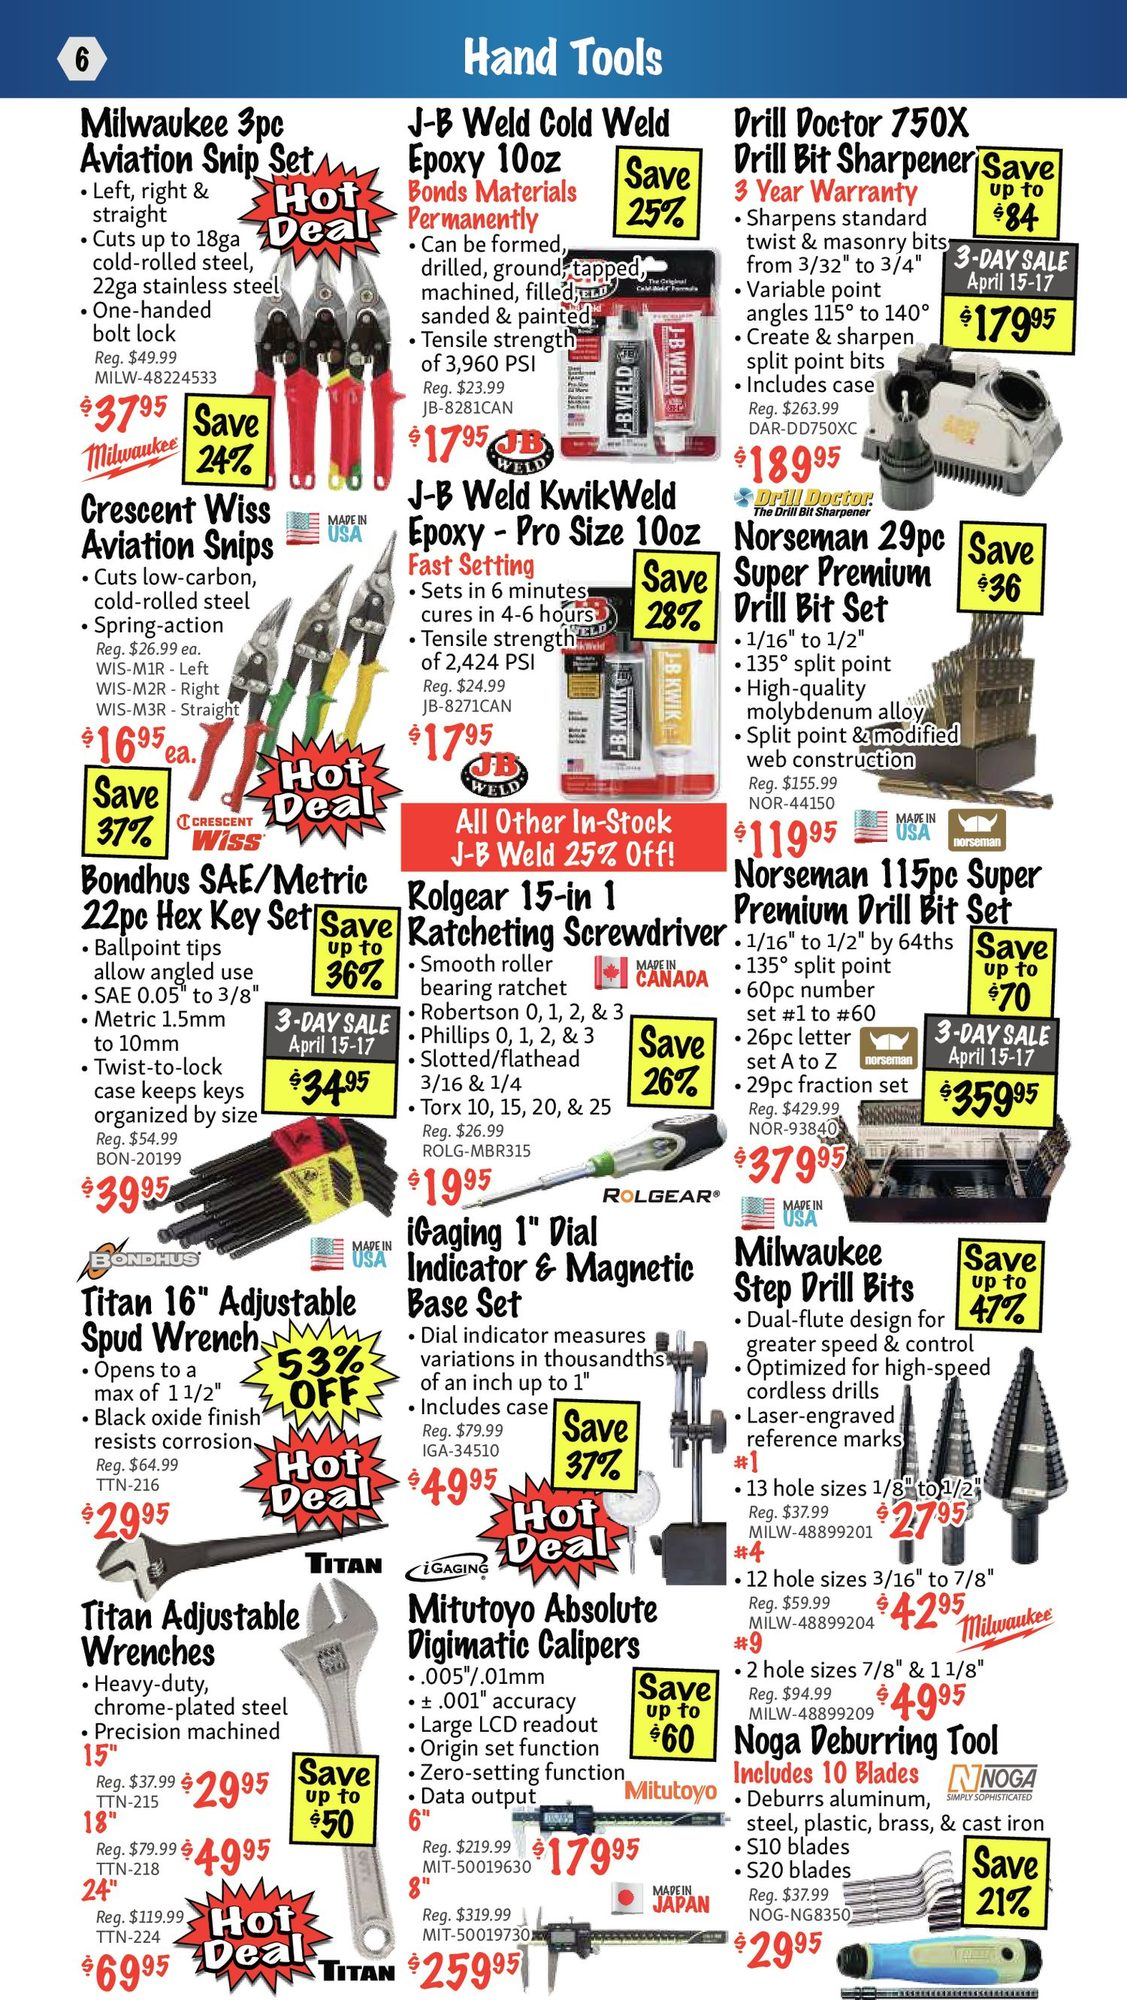 KMS Tools - Hand Tools, Air Tools & Compressor Sale - Page 6